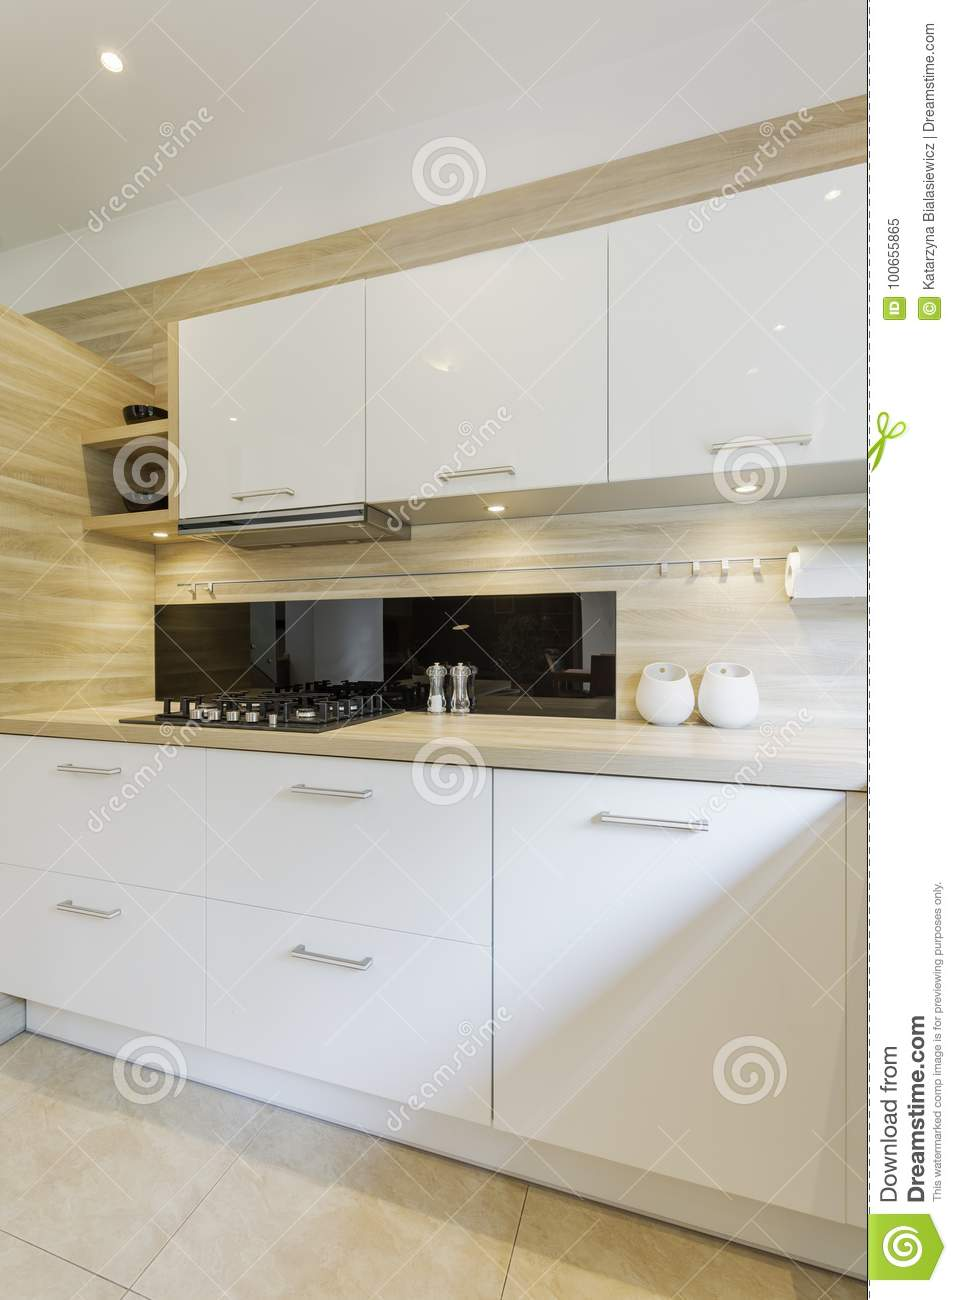 Spacious Kitchen With White Cabinets Stock Image Image Of Beige Interior 100655865